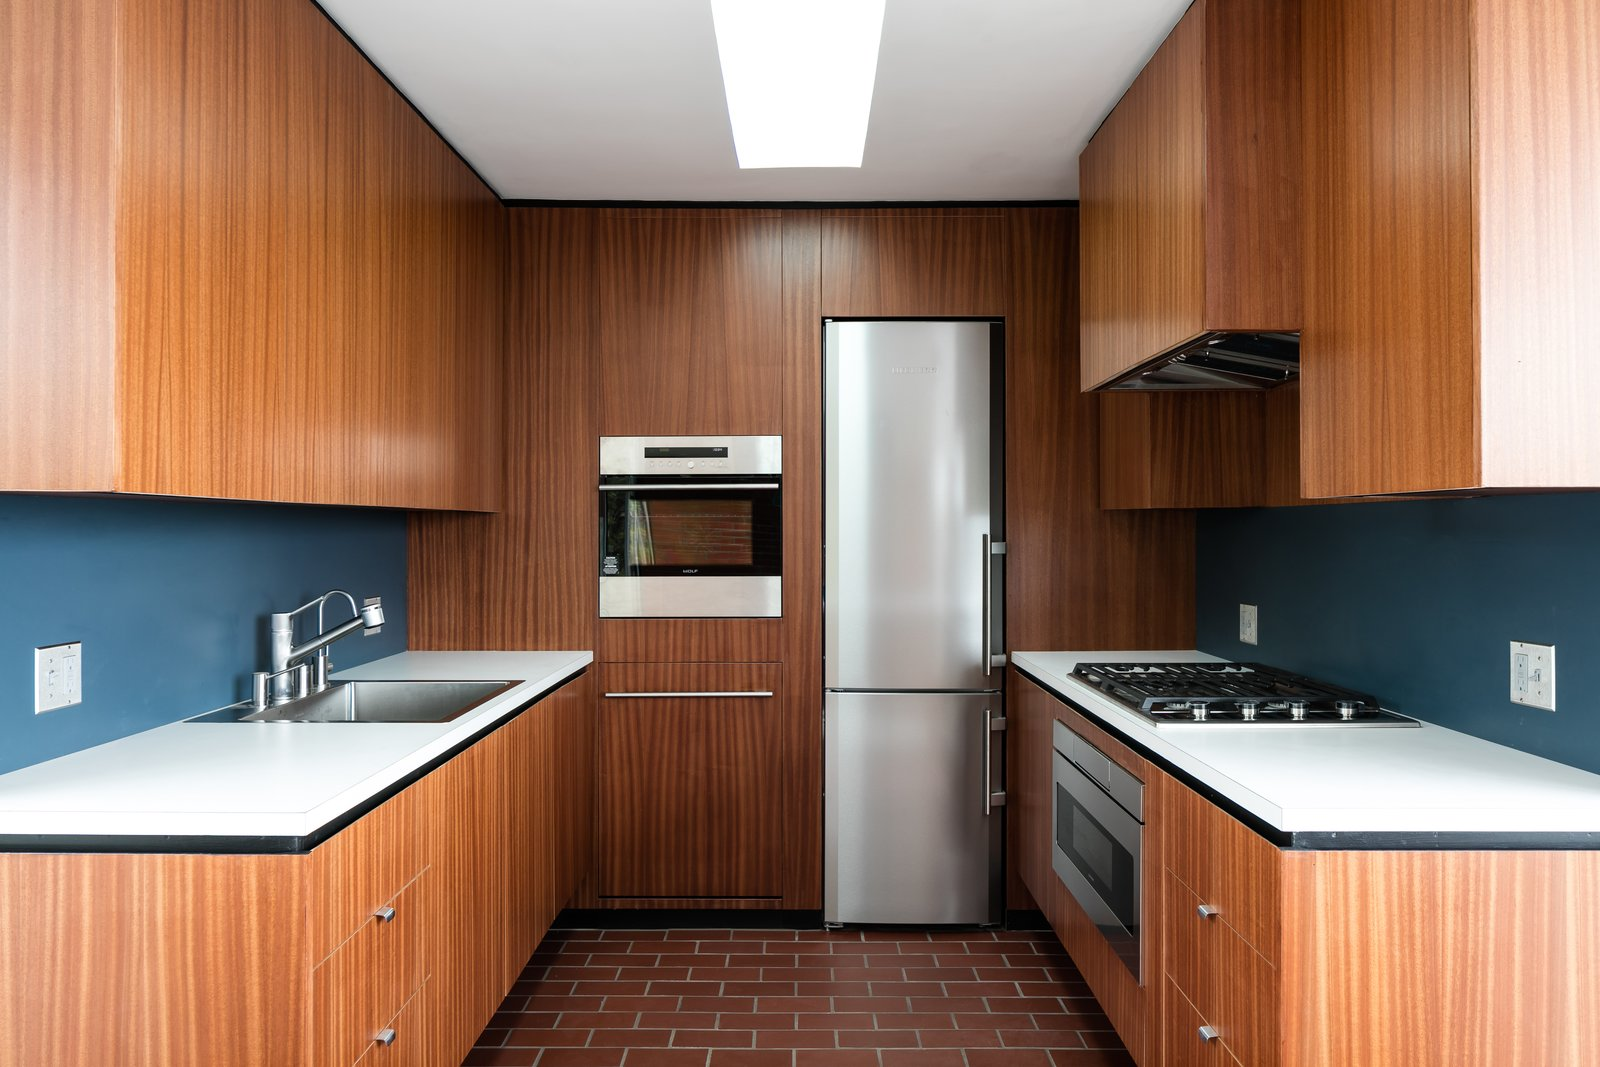 Kitchen, Range Hood, Laminate, Terra-cotta Tile, Ceiling, Drop In, Refrigerator, Wood, Cooktops, and Wall Oven A look at the kitchen.  Best Kitchen Cooktops Range Hood Refrigerator Drop In Ceiling Photos from Craig Ellwood's Iconic Smith House in L.A. Is Listed For $3M